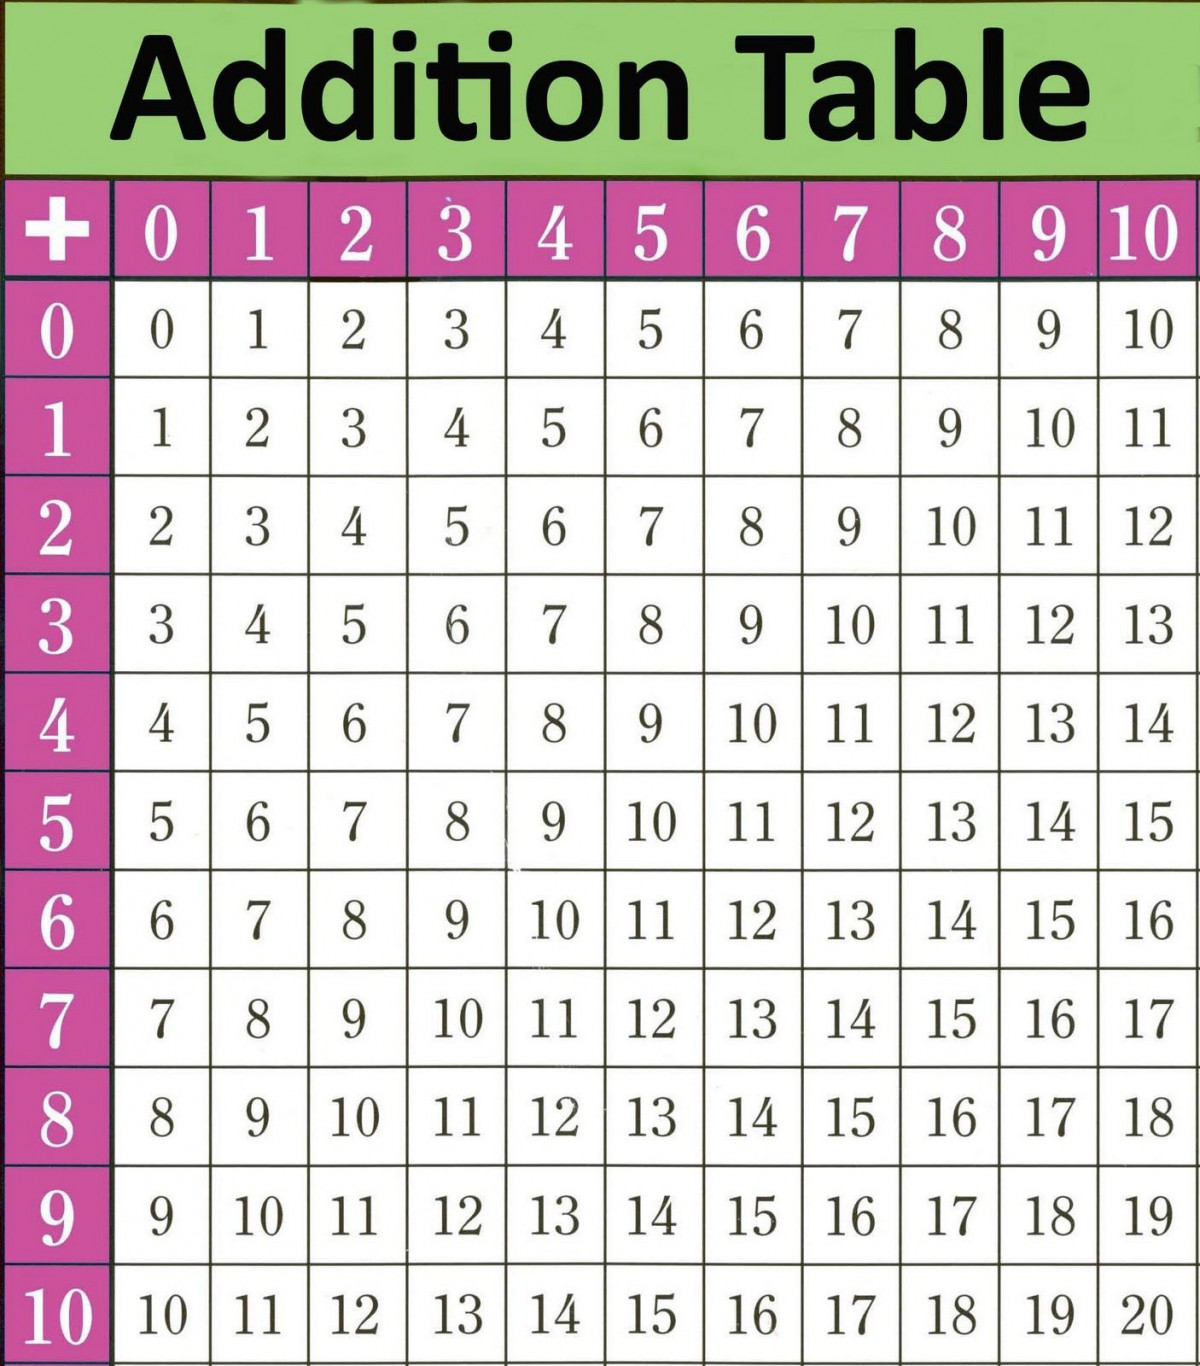 Addition Table Patterns Worksheets